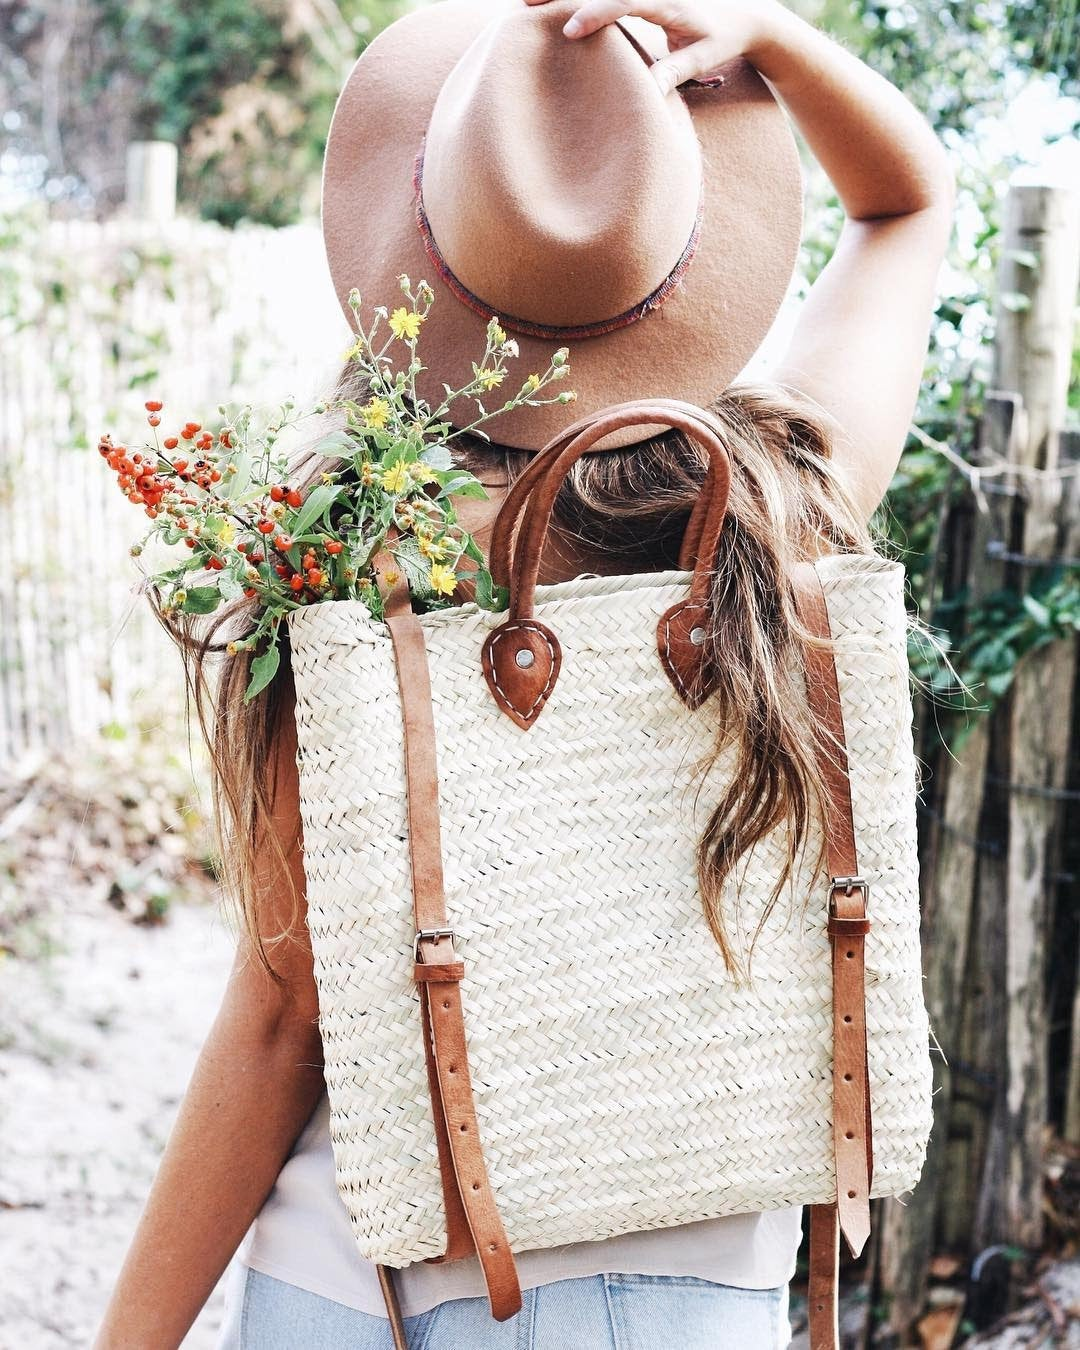 person walking carrying straw backpack with leather straps full of wildflowers